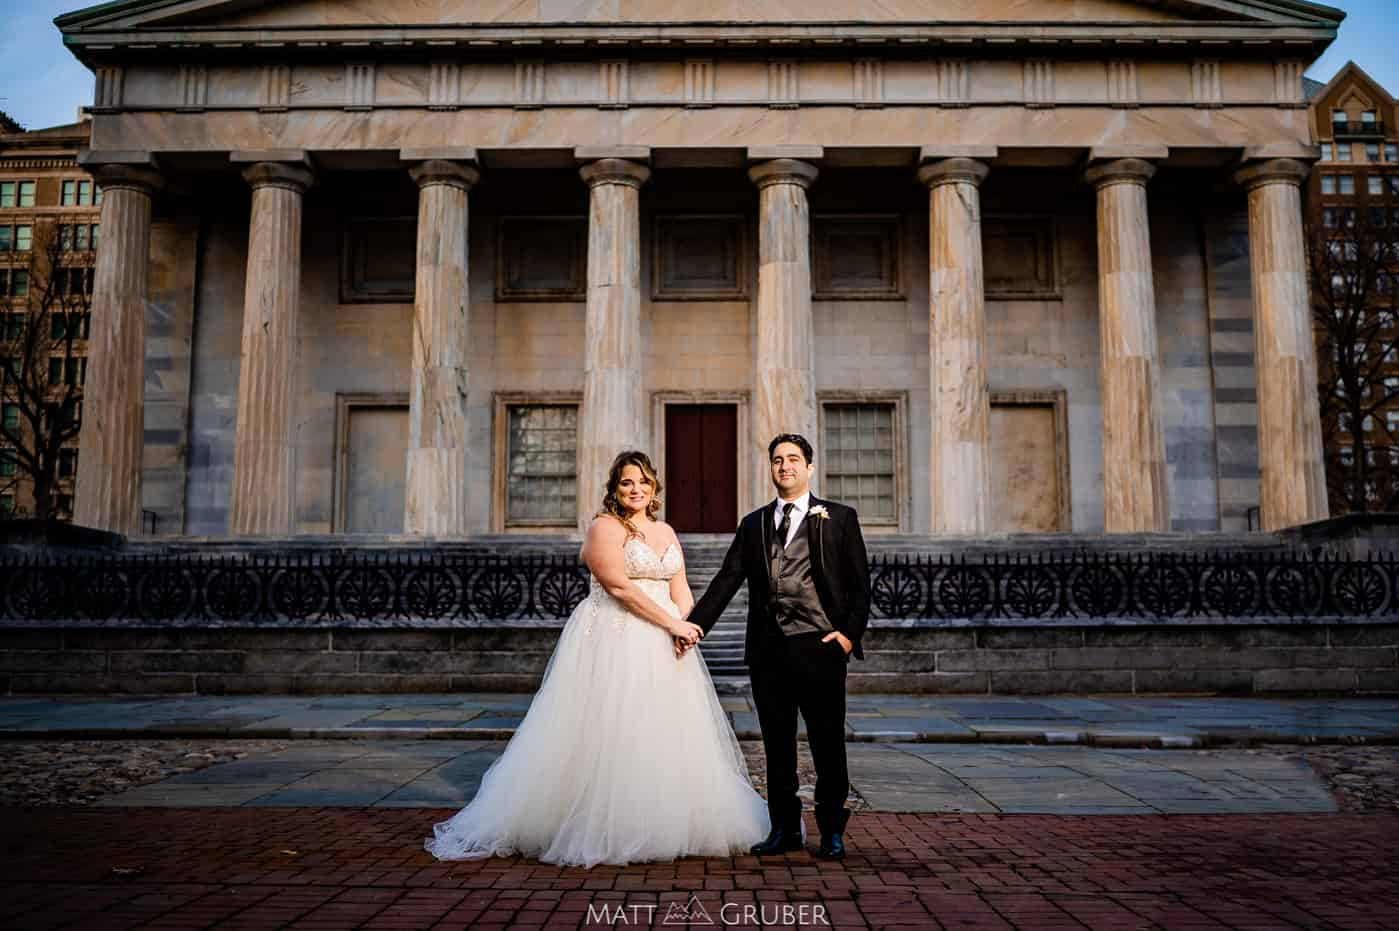 Wedding Photos at 2nd Bank Philadelphia in January 2021